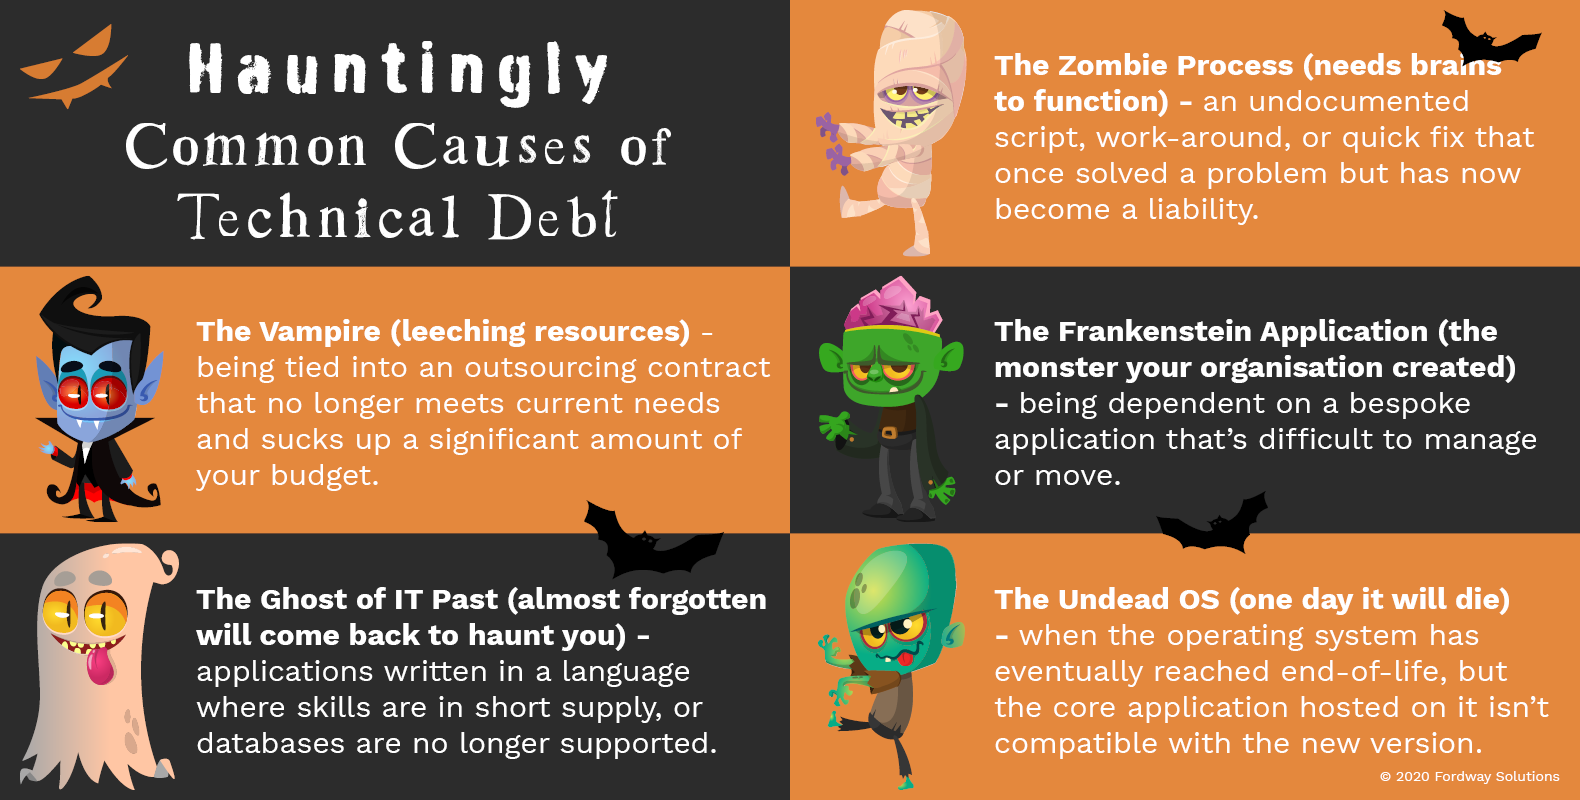 Hauntingly common causes of technical debt